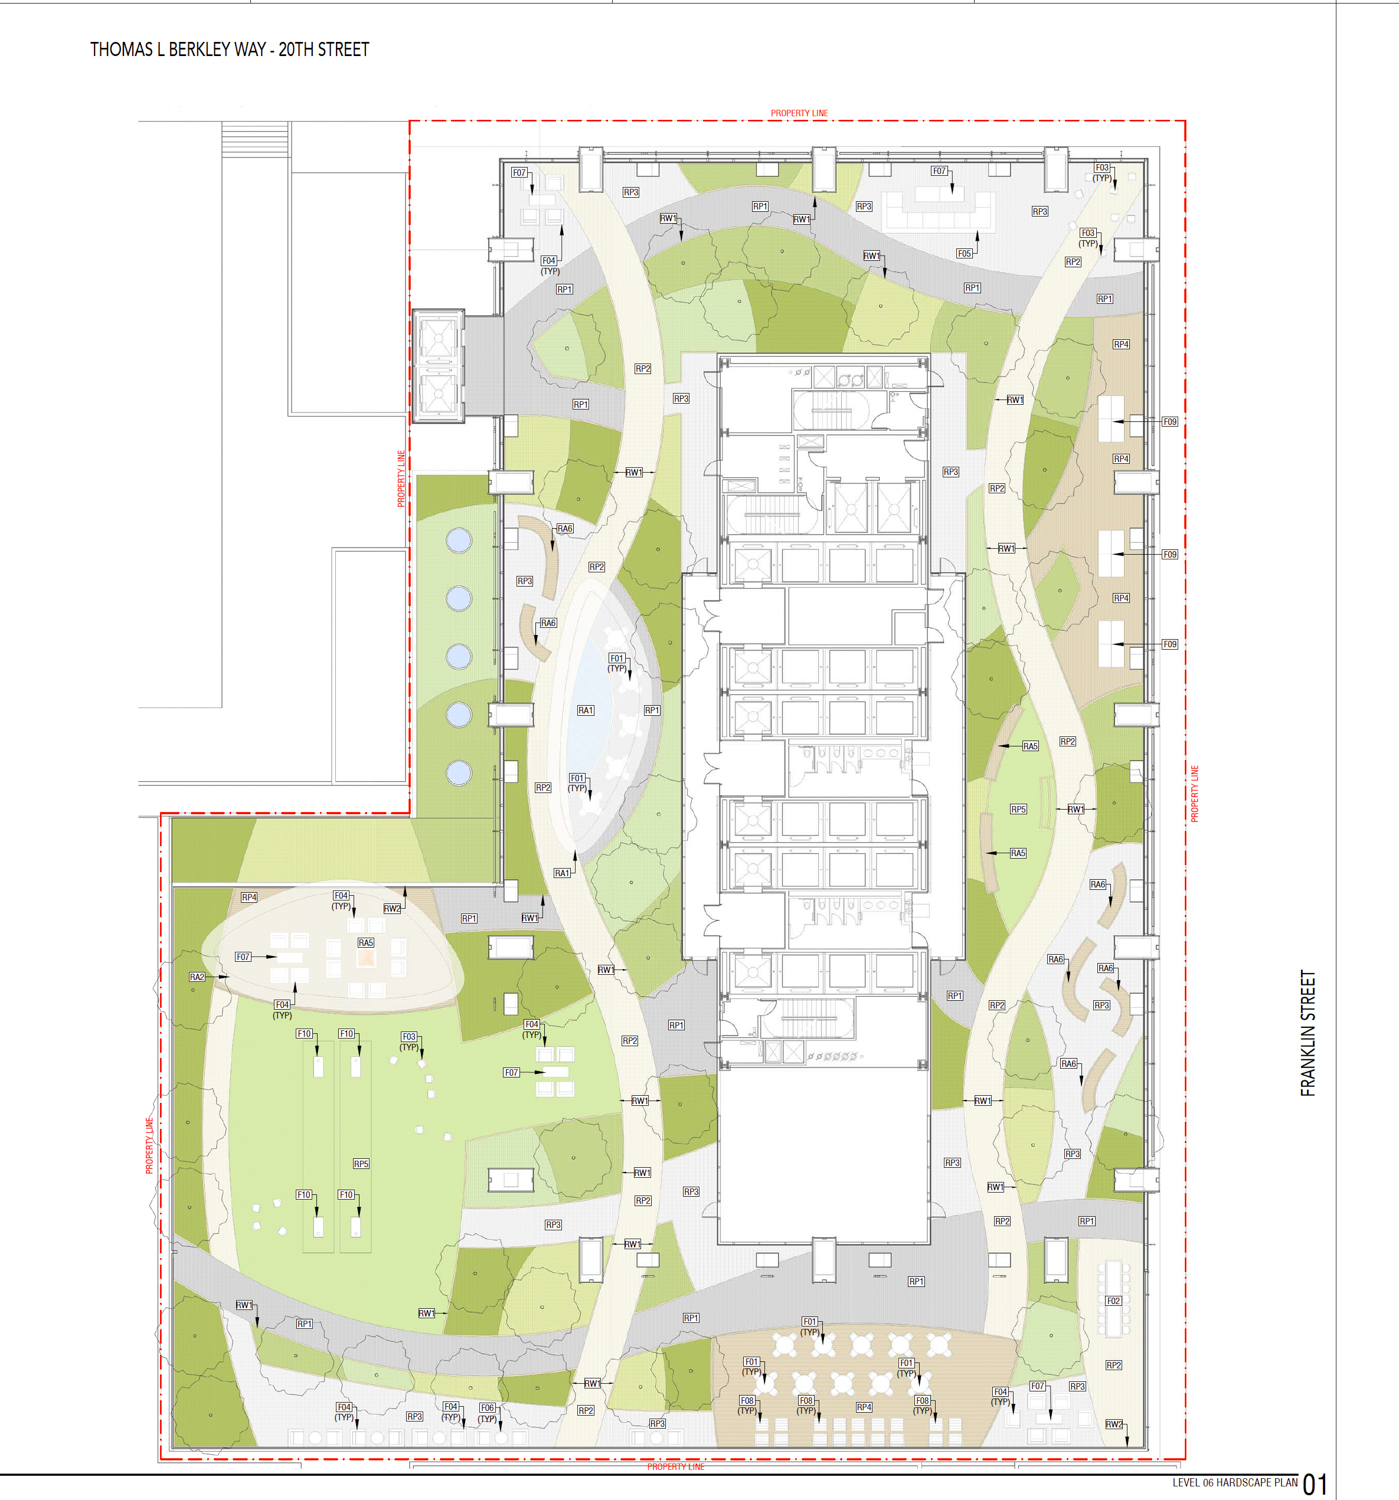 415 20th Street landscaping for the sixth level terrace, design by OJB Landscape Architects